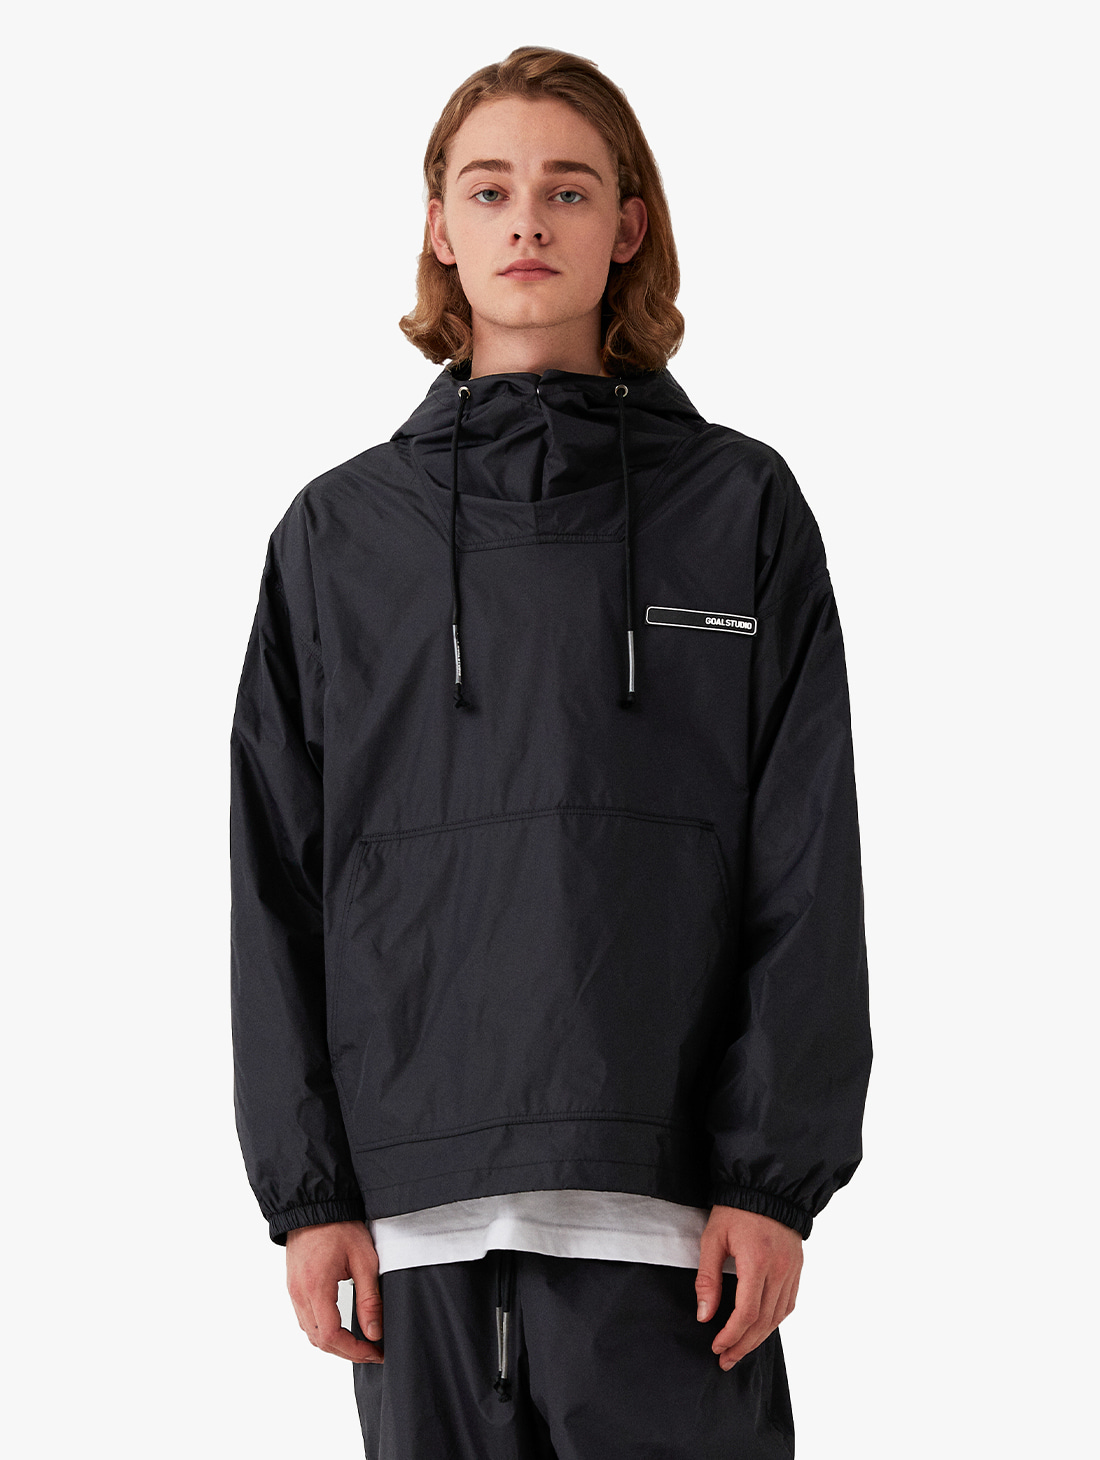 GOALSTUDIO OVERSIZED ANORAK JACKET (2 Colors)